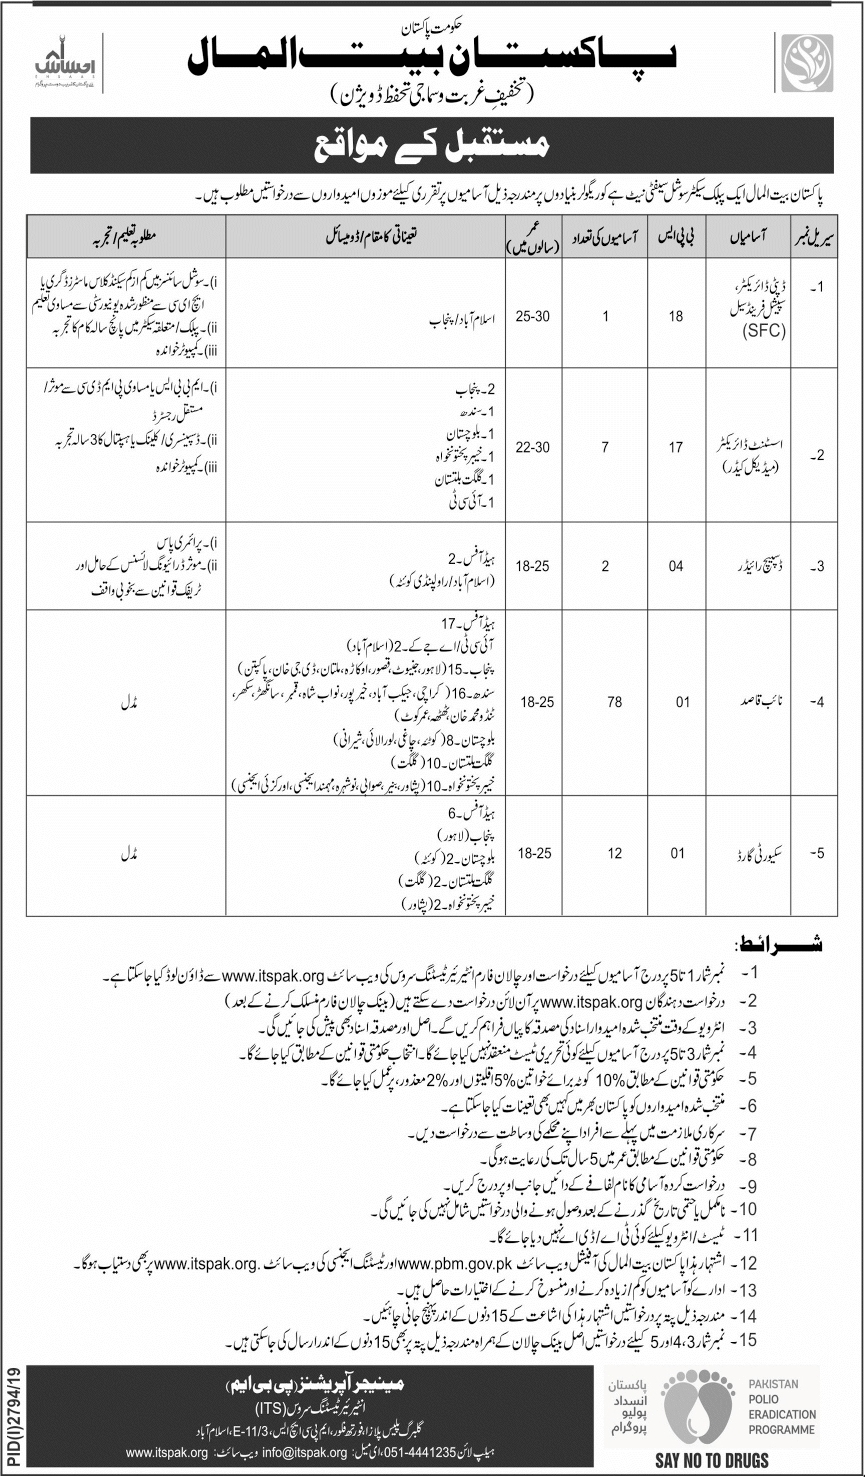 PBM Pakistan BaitulMal Jobs ITSPAK Test Roll Number Slip